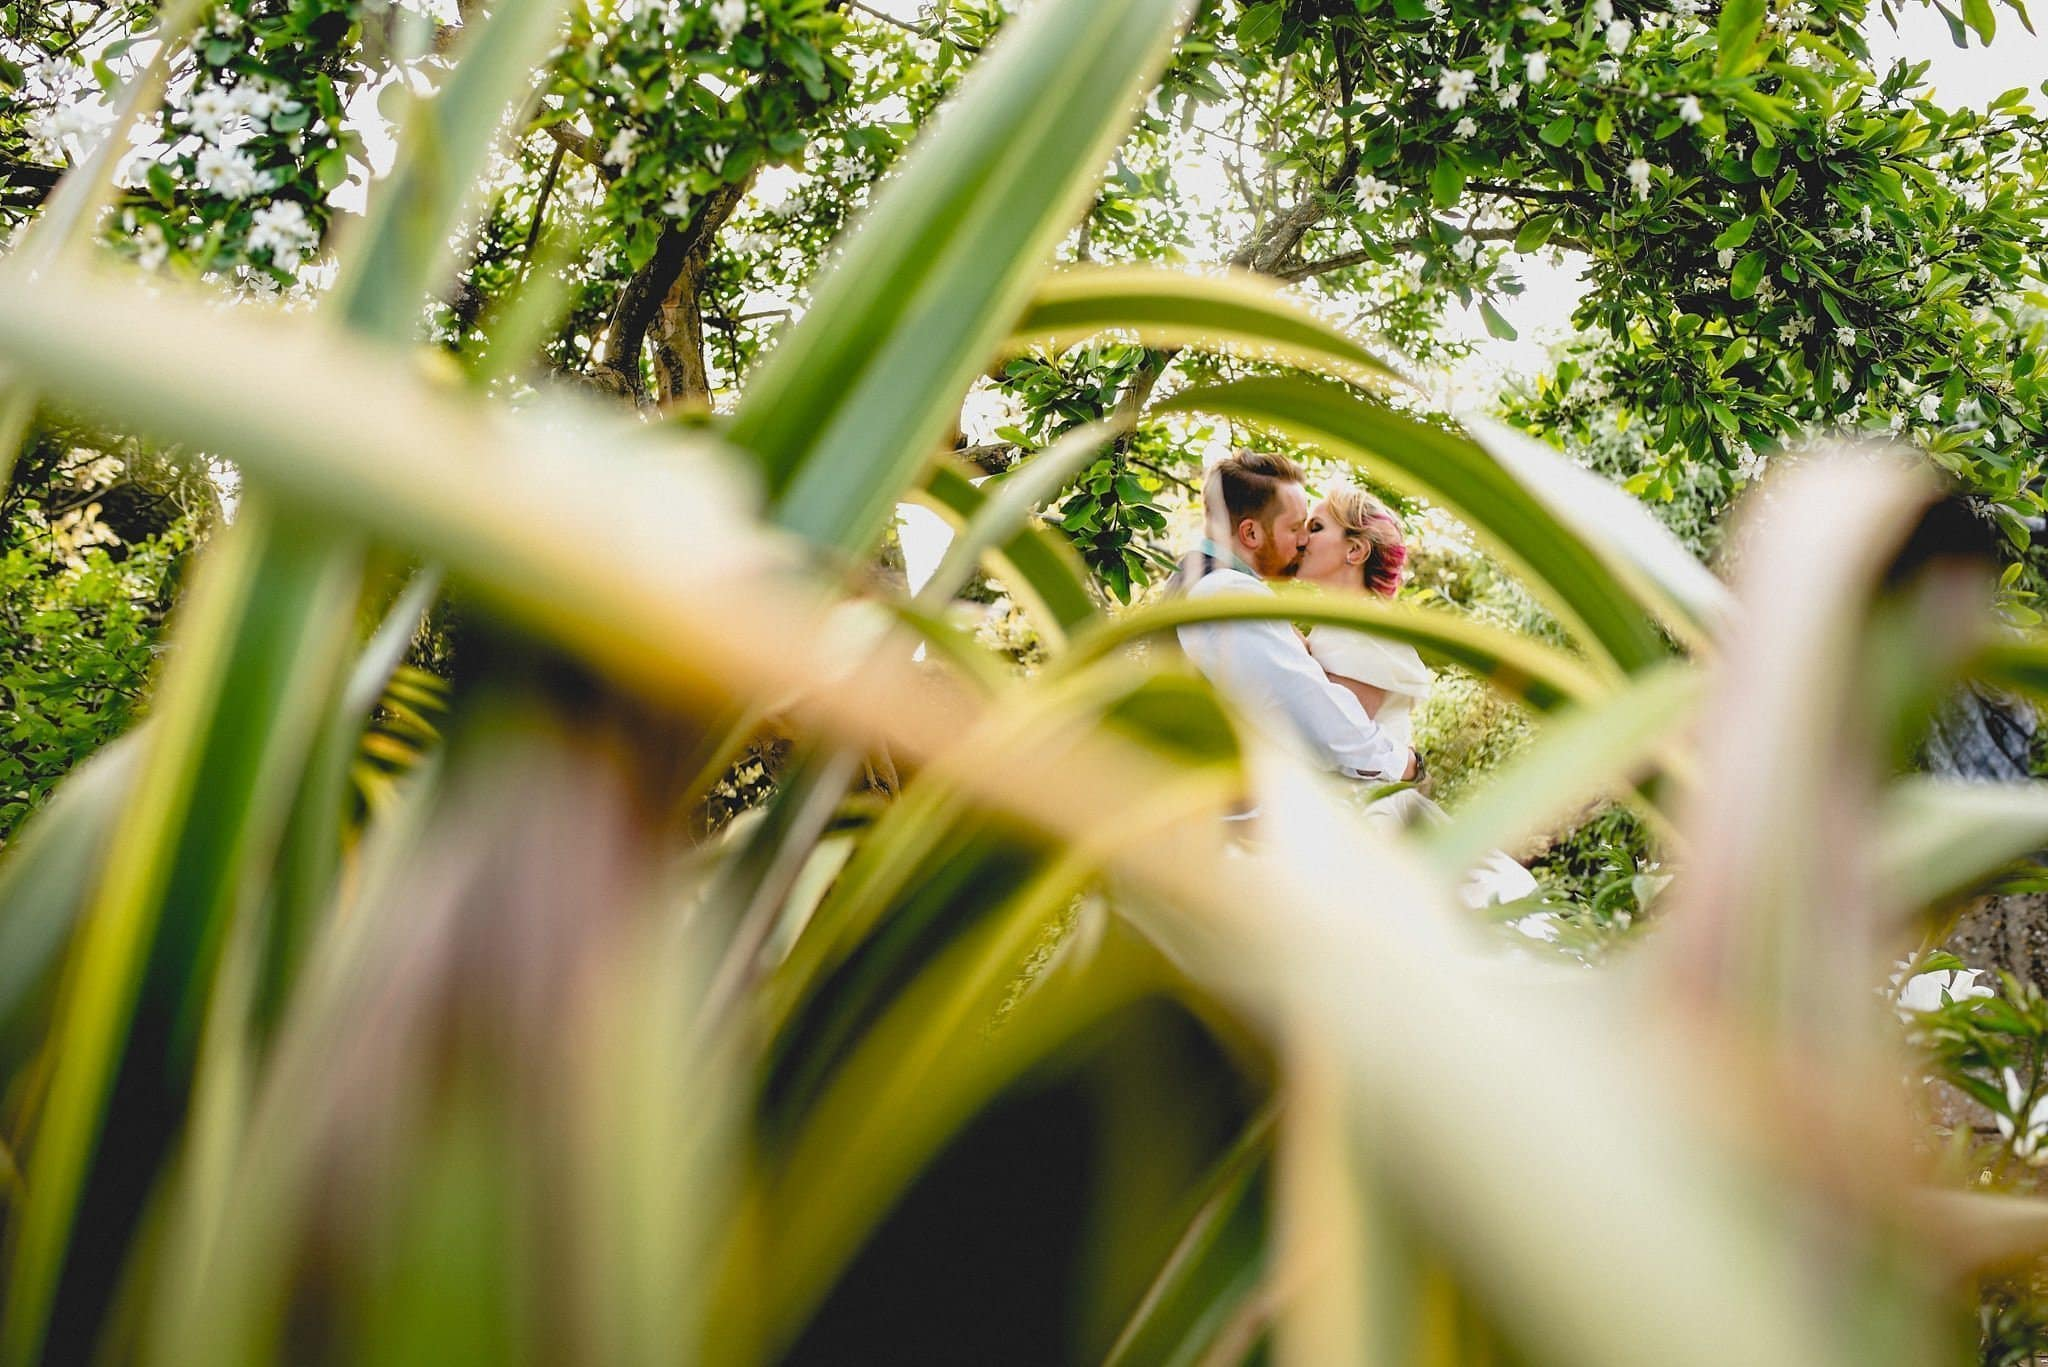 A shot taken through the leaves of a plant in the grounds of Birtsmorton Court, with Hatty and Steven seen kissing in the background